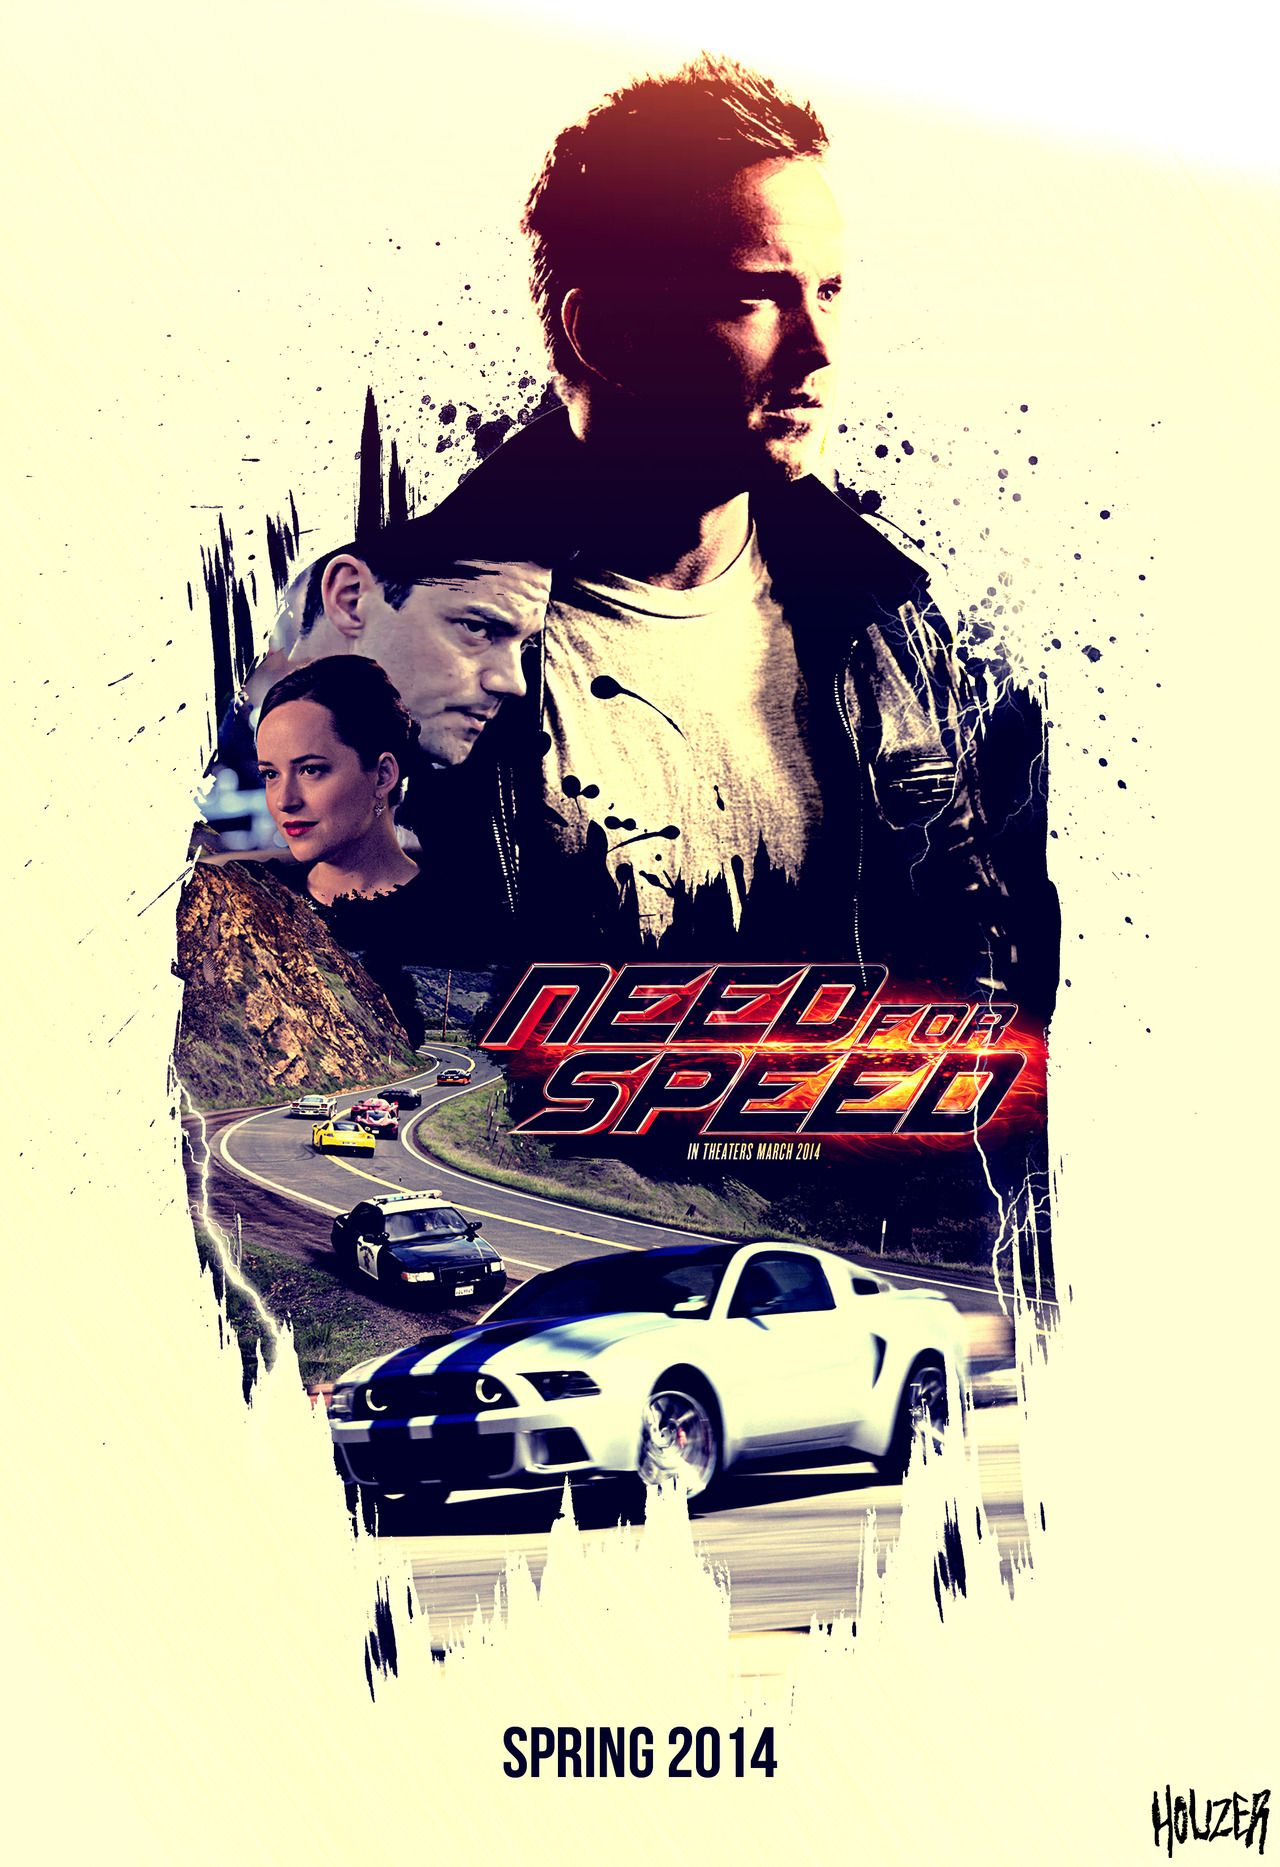 Pin By Keri Newberry On Movie Tv Art Need For Speed Movie Need For Speed Speed The Movie